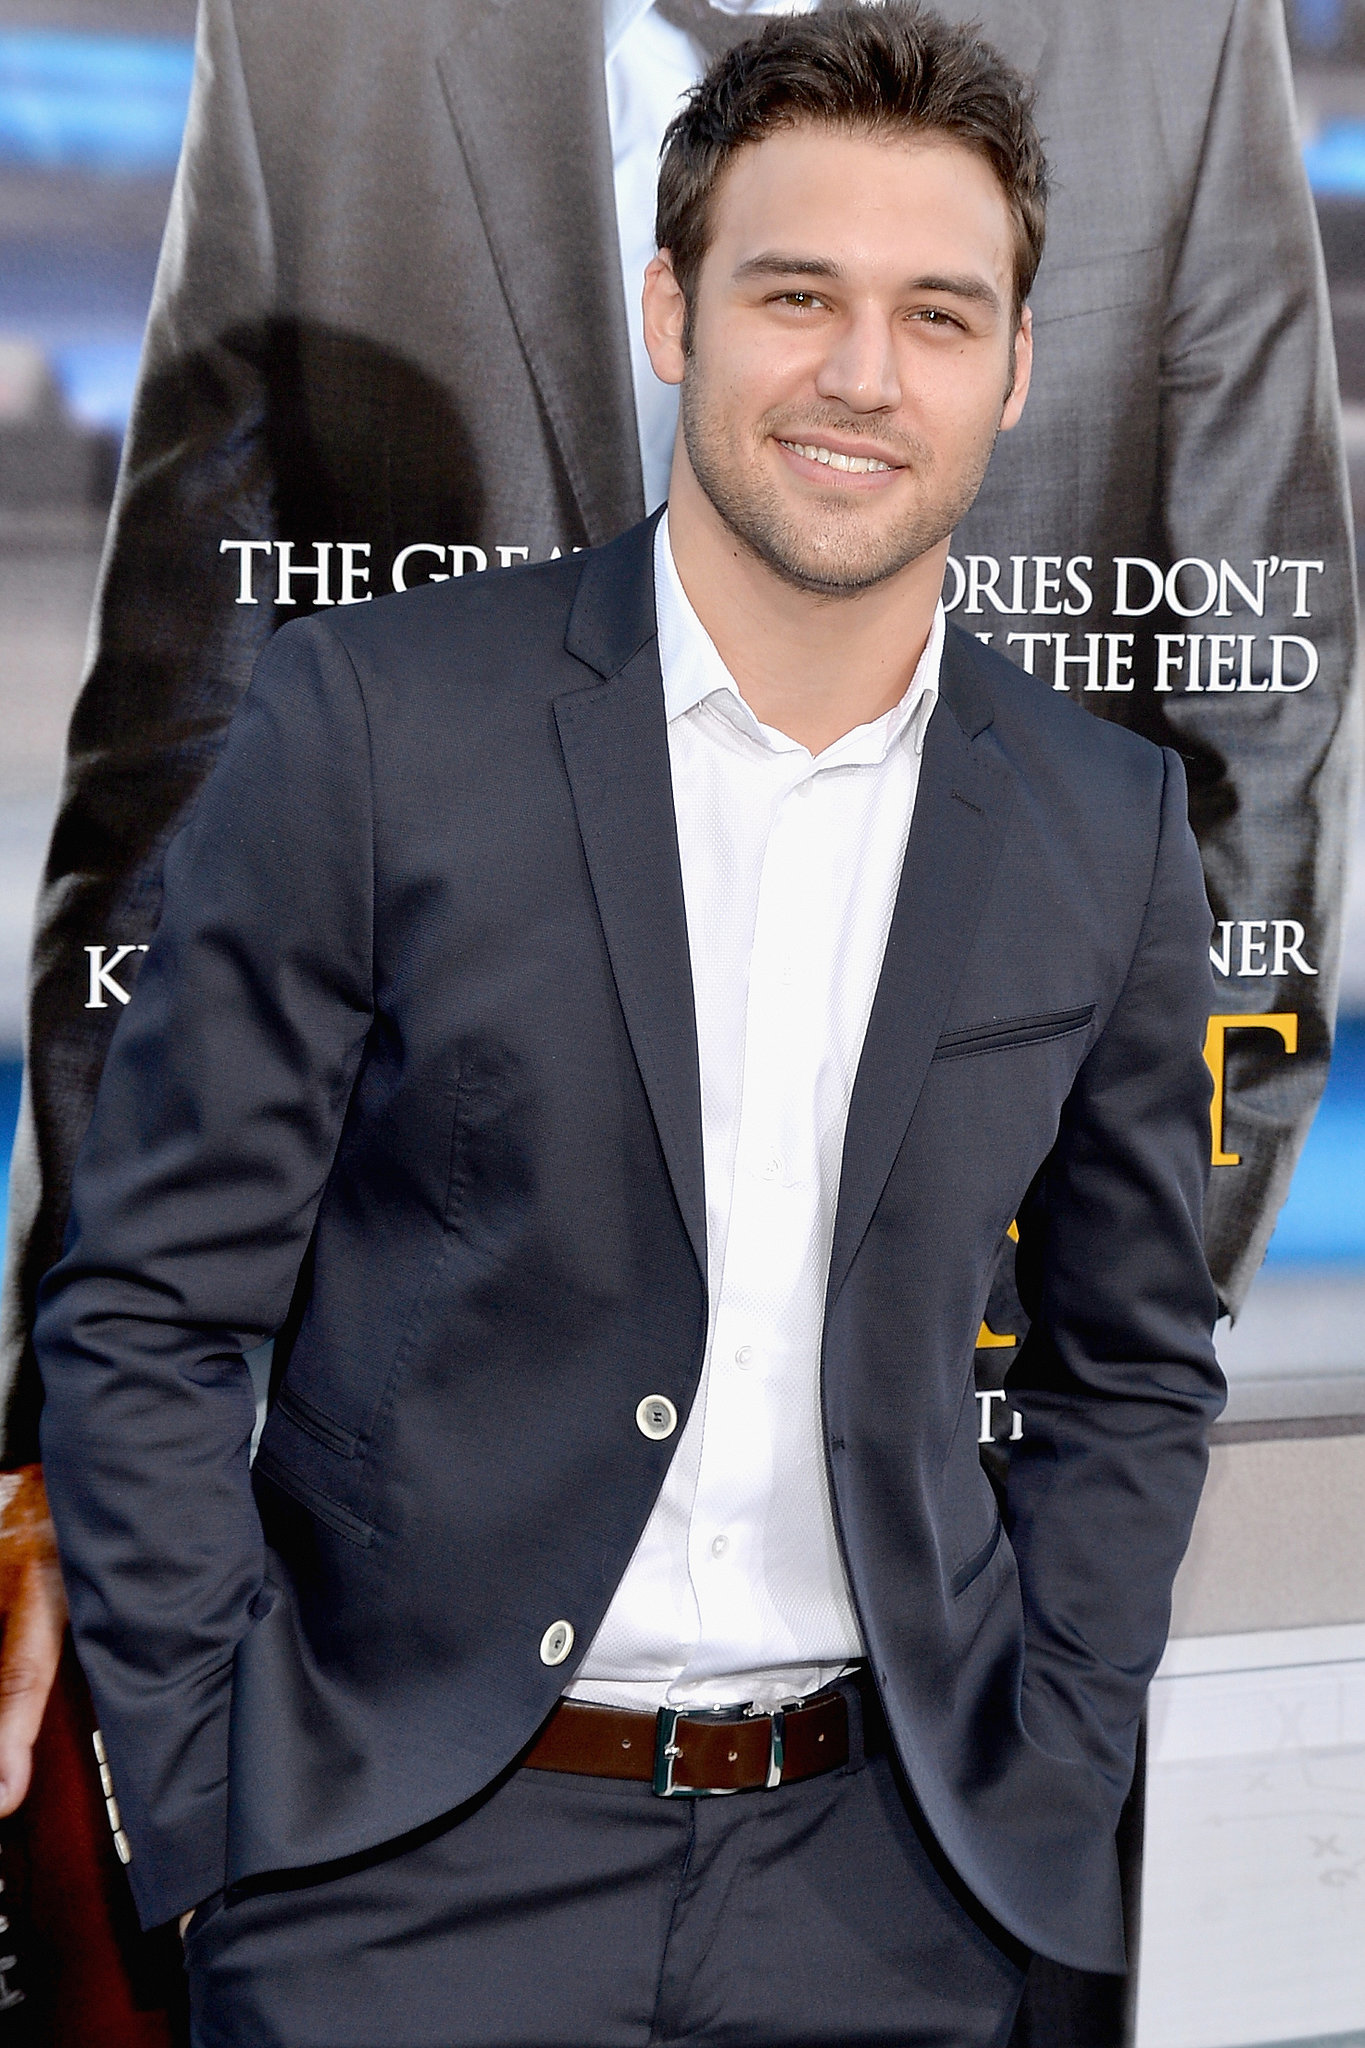 Step Up: All In's Ryan Guzman joined Jem and the Holograms as Rio, Jem's love interest.